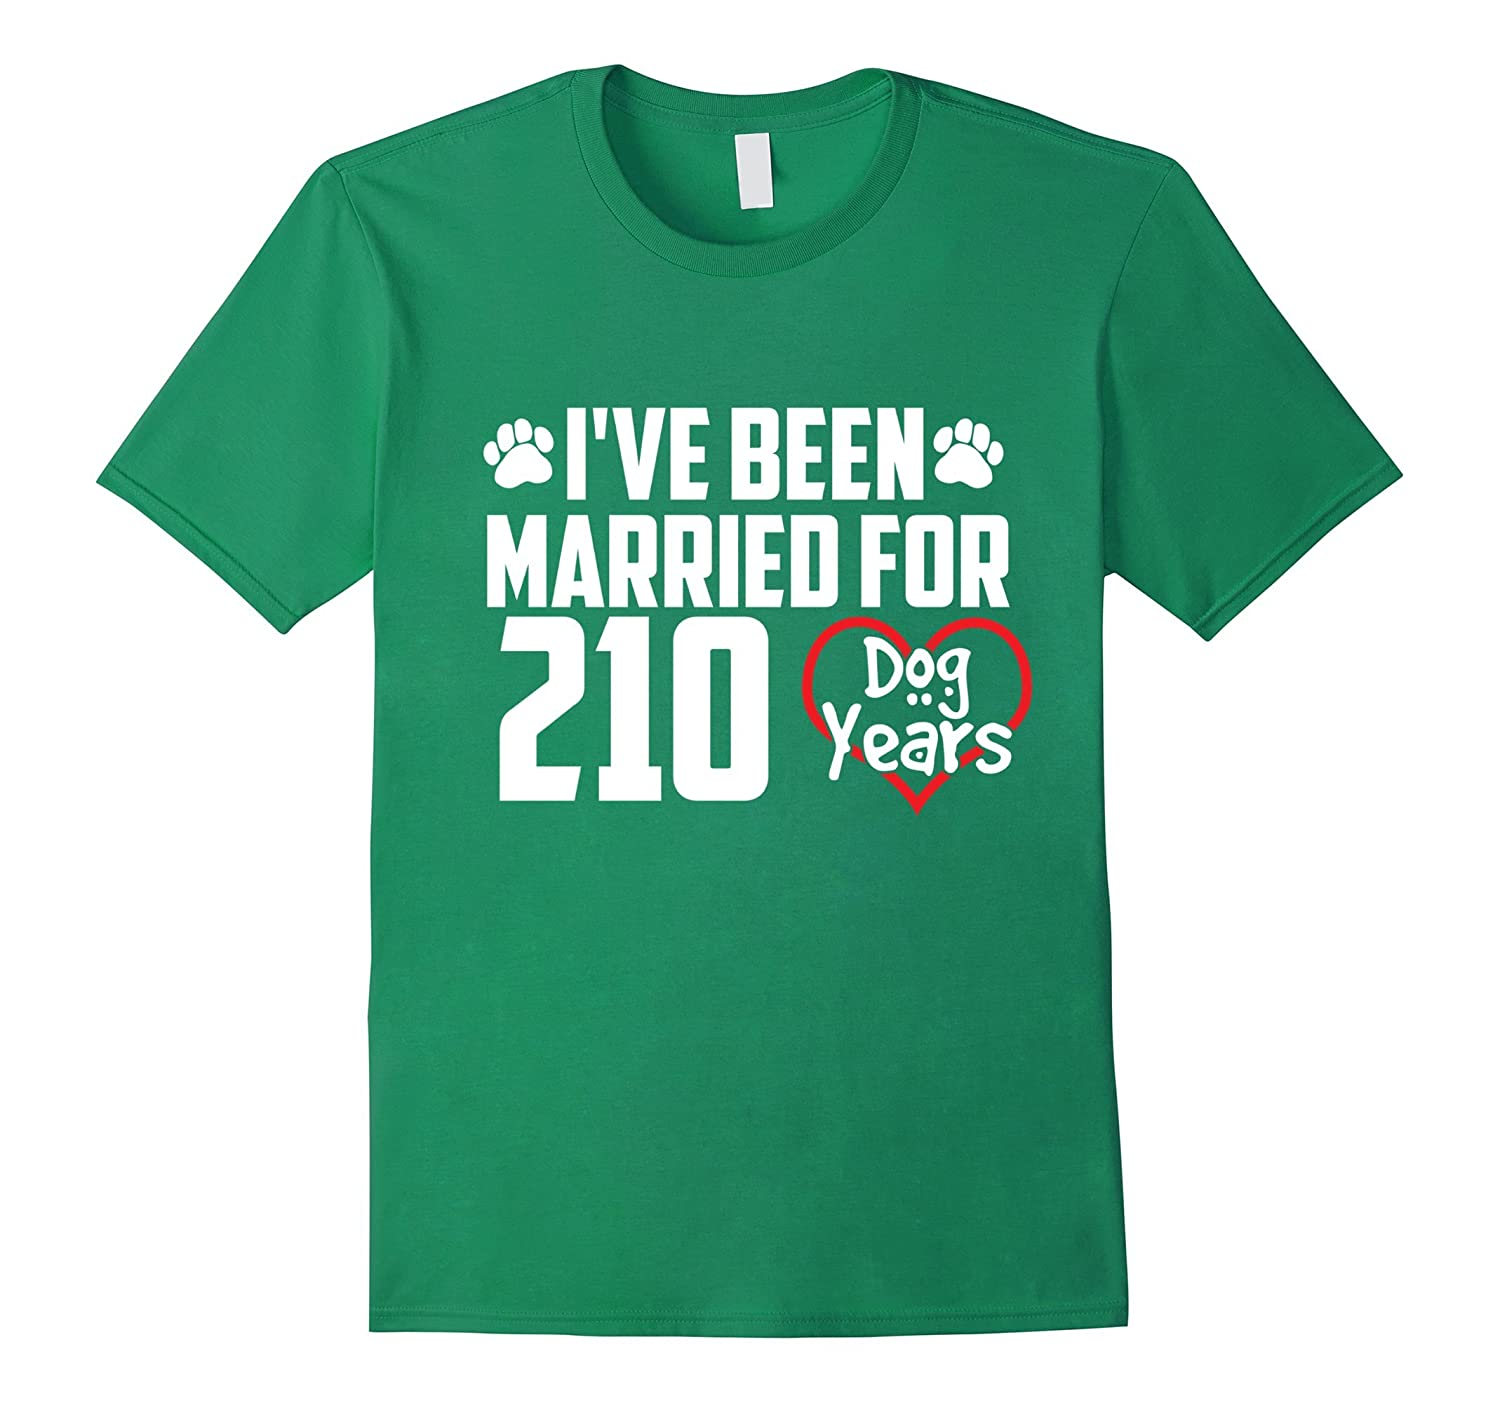 30th Wedding Anniversary Gift For Dog lover. Couple Shirt.-BN